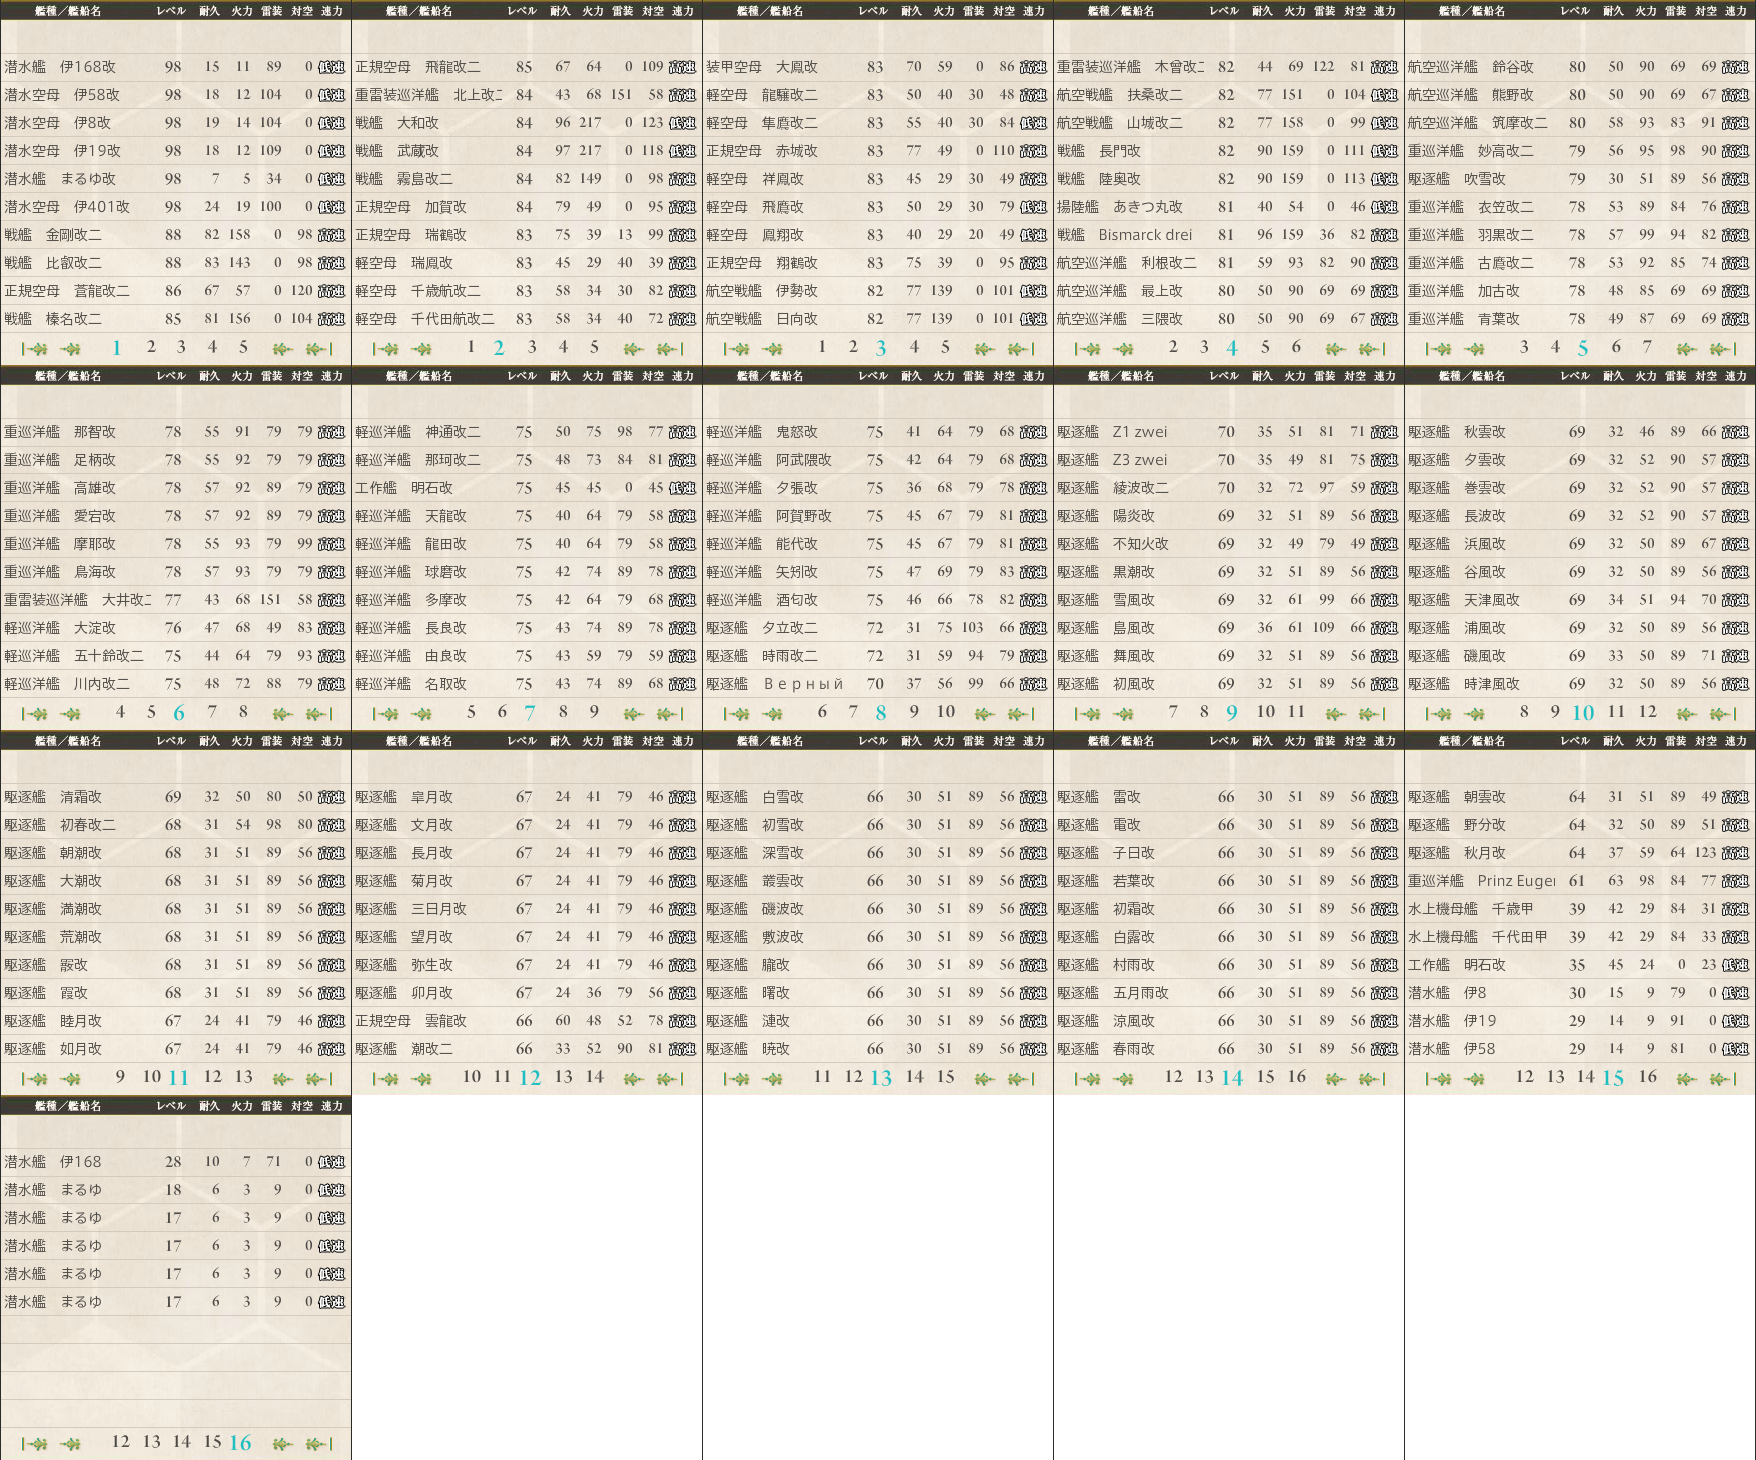 data.kancolle.levelsort.20141214.png